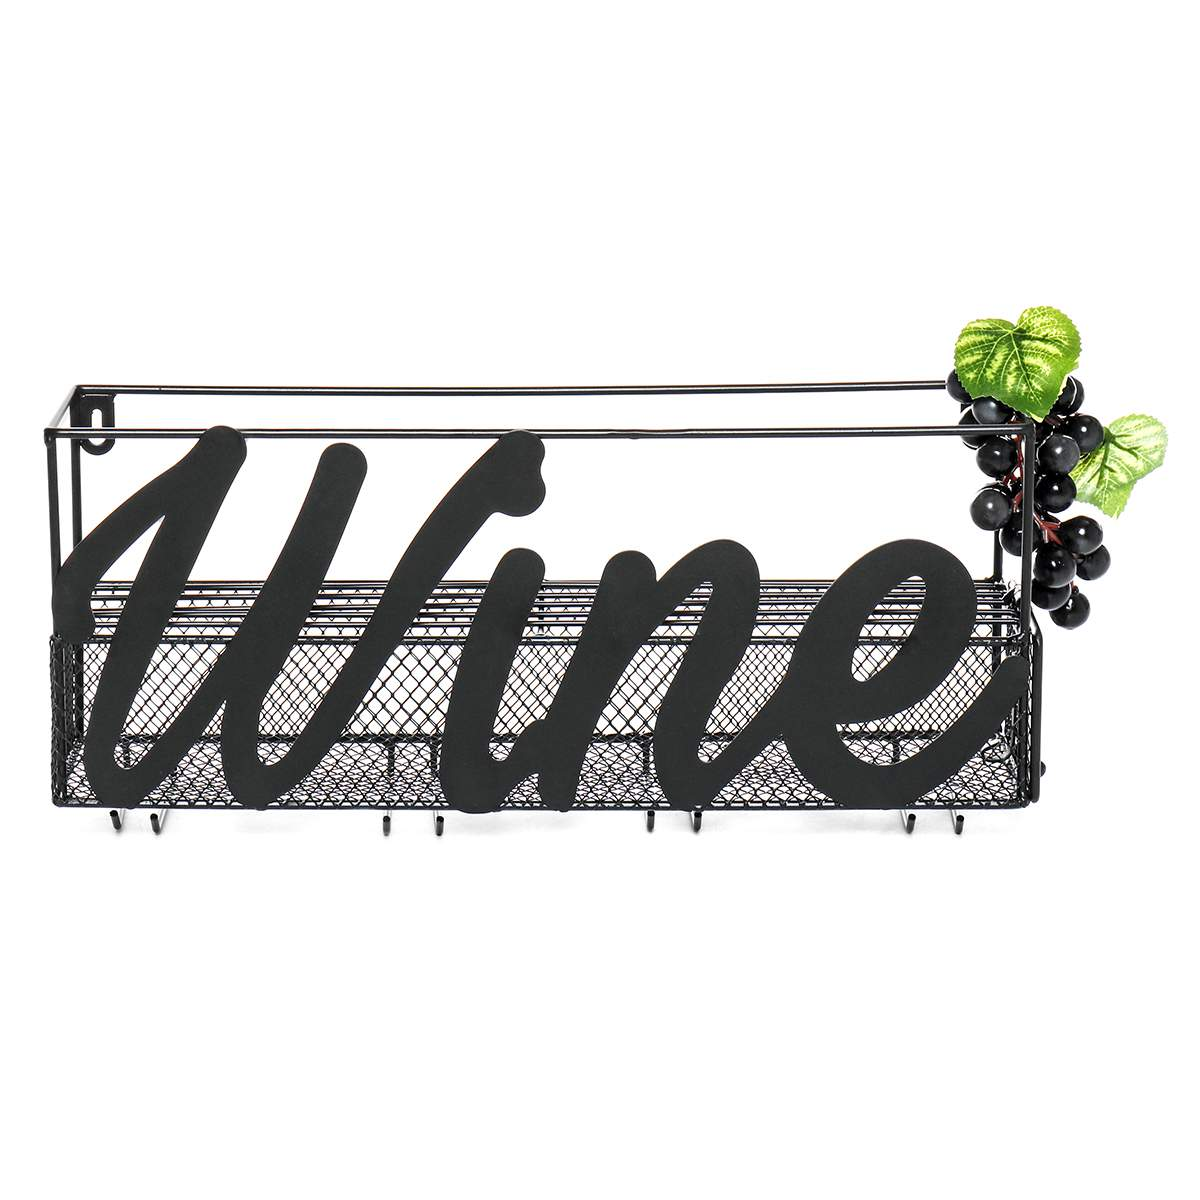 Closeout DealsChampagne-Shelf Bottle Wine-Rack Wine-Glass-Holders Wall-Mounted Extra-Cork-Tray Metal